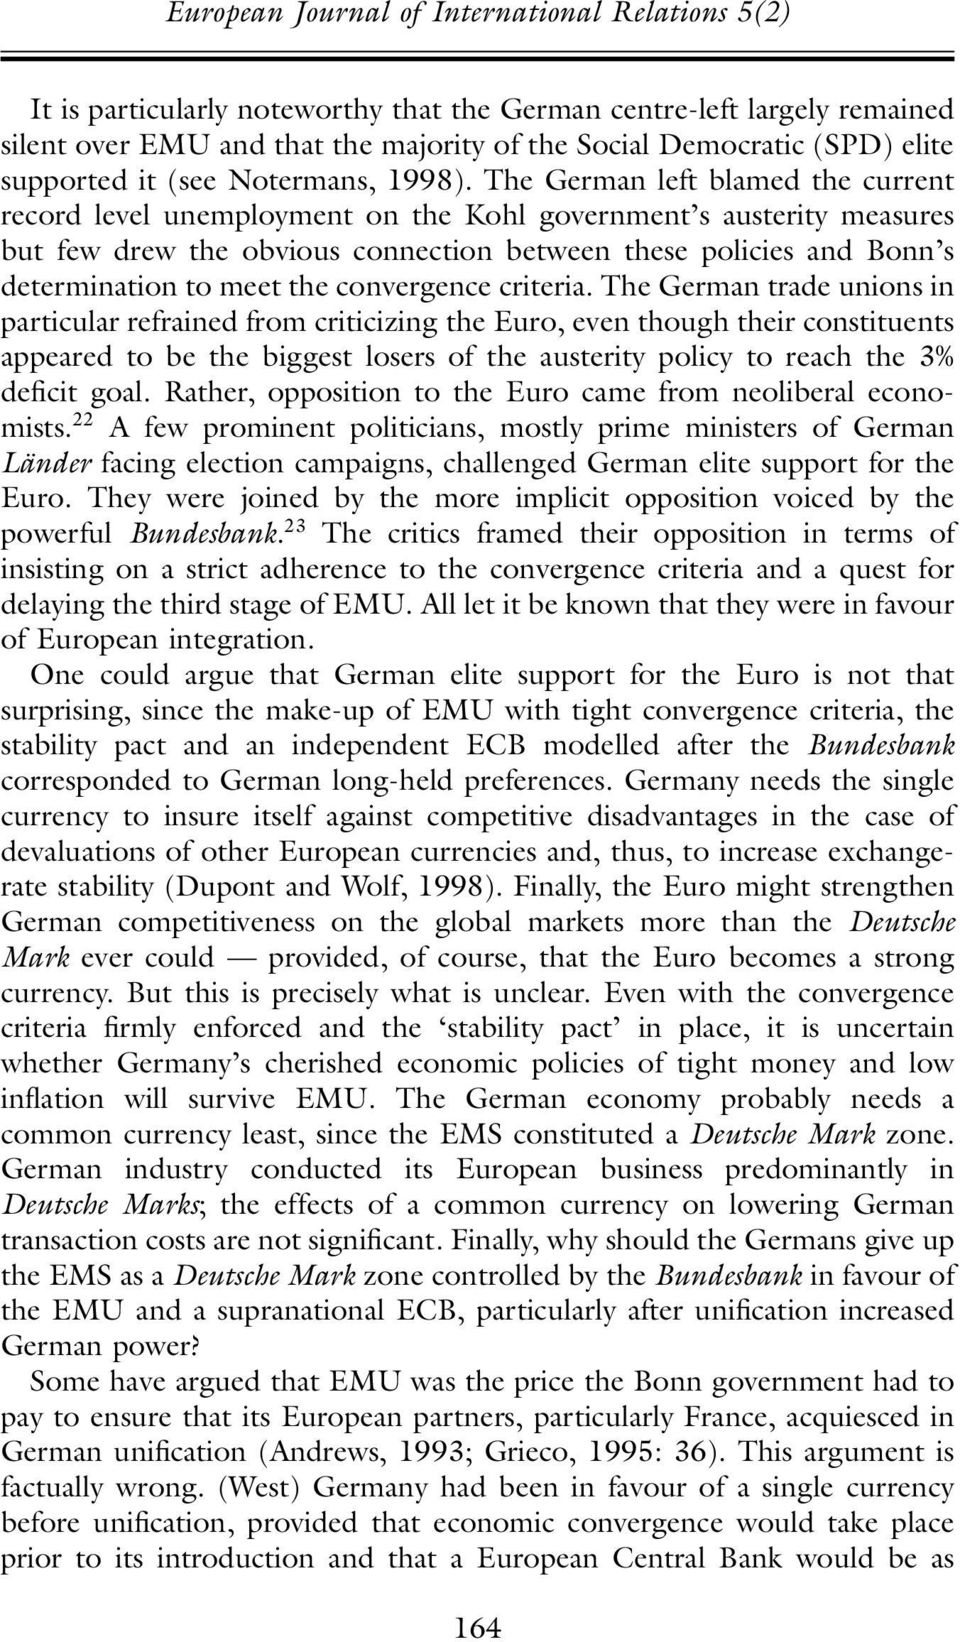 The German left blamed the current record level unemployment on the Kohl government s austerity measures but few drew the obvious connection between these policies and Bonn s determination to meet